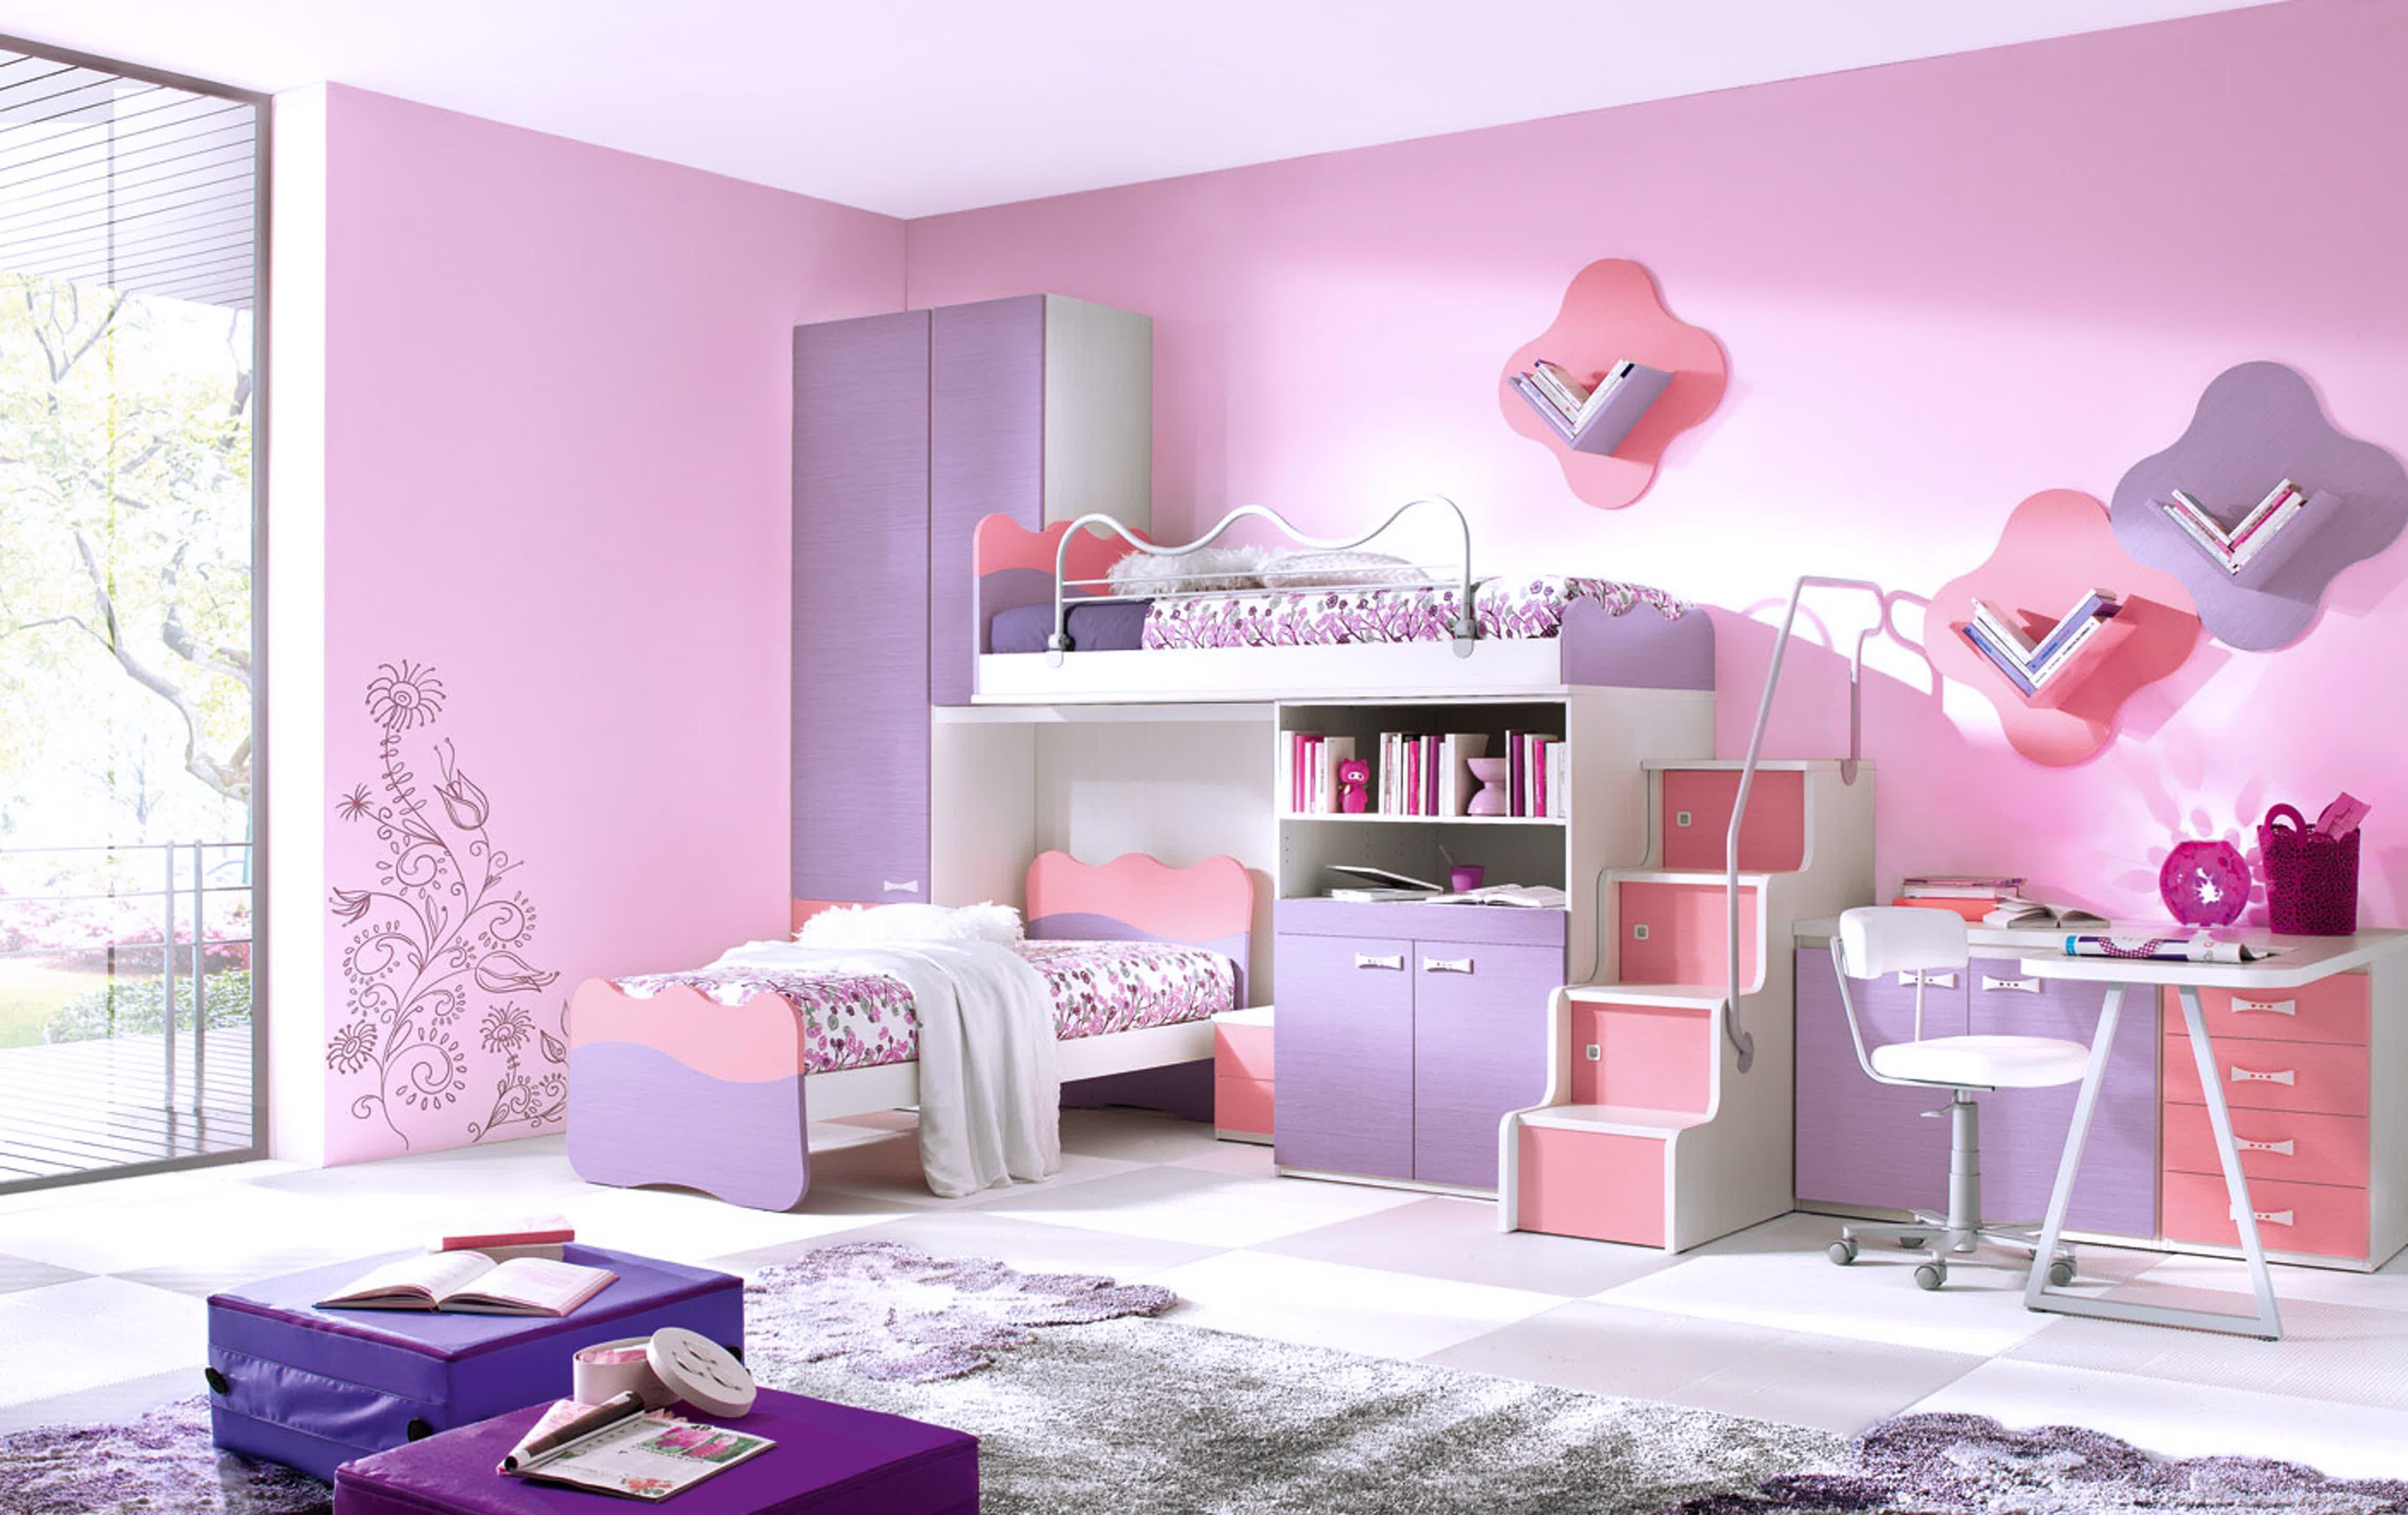 Bedroom Set for Girls Beautiful 35 Pink Girly Bedroom Color Schemes that Will Make